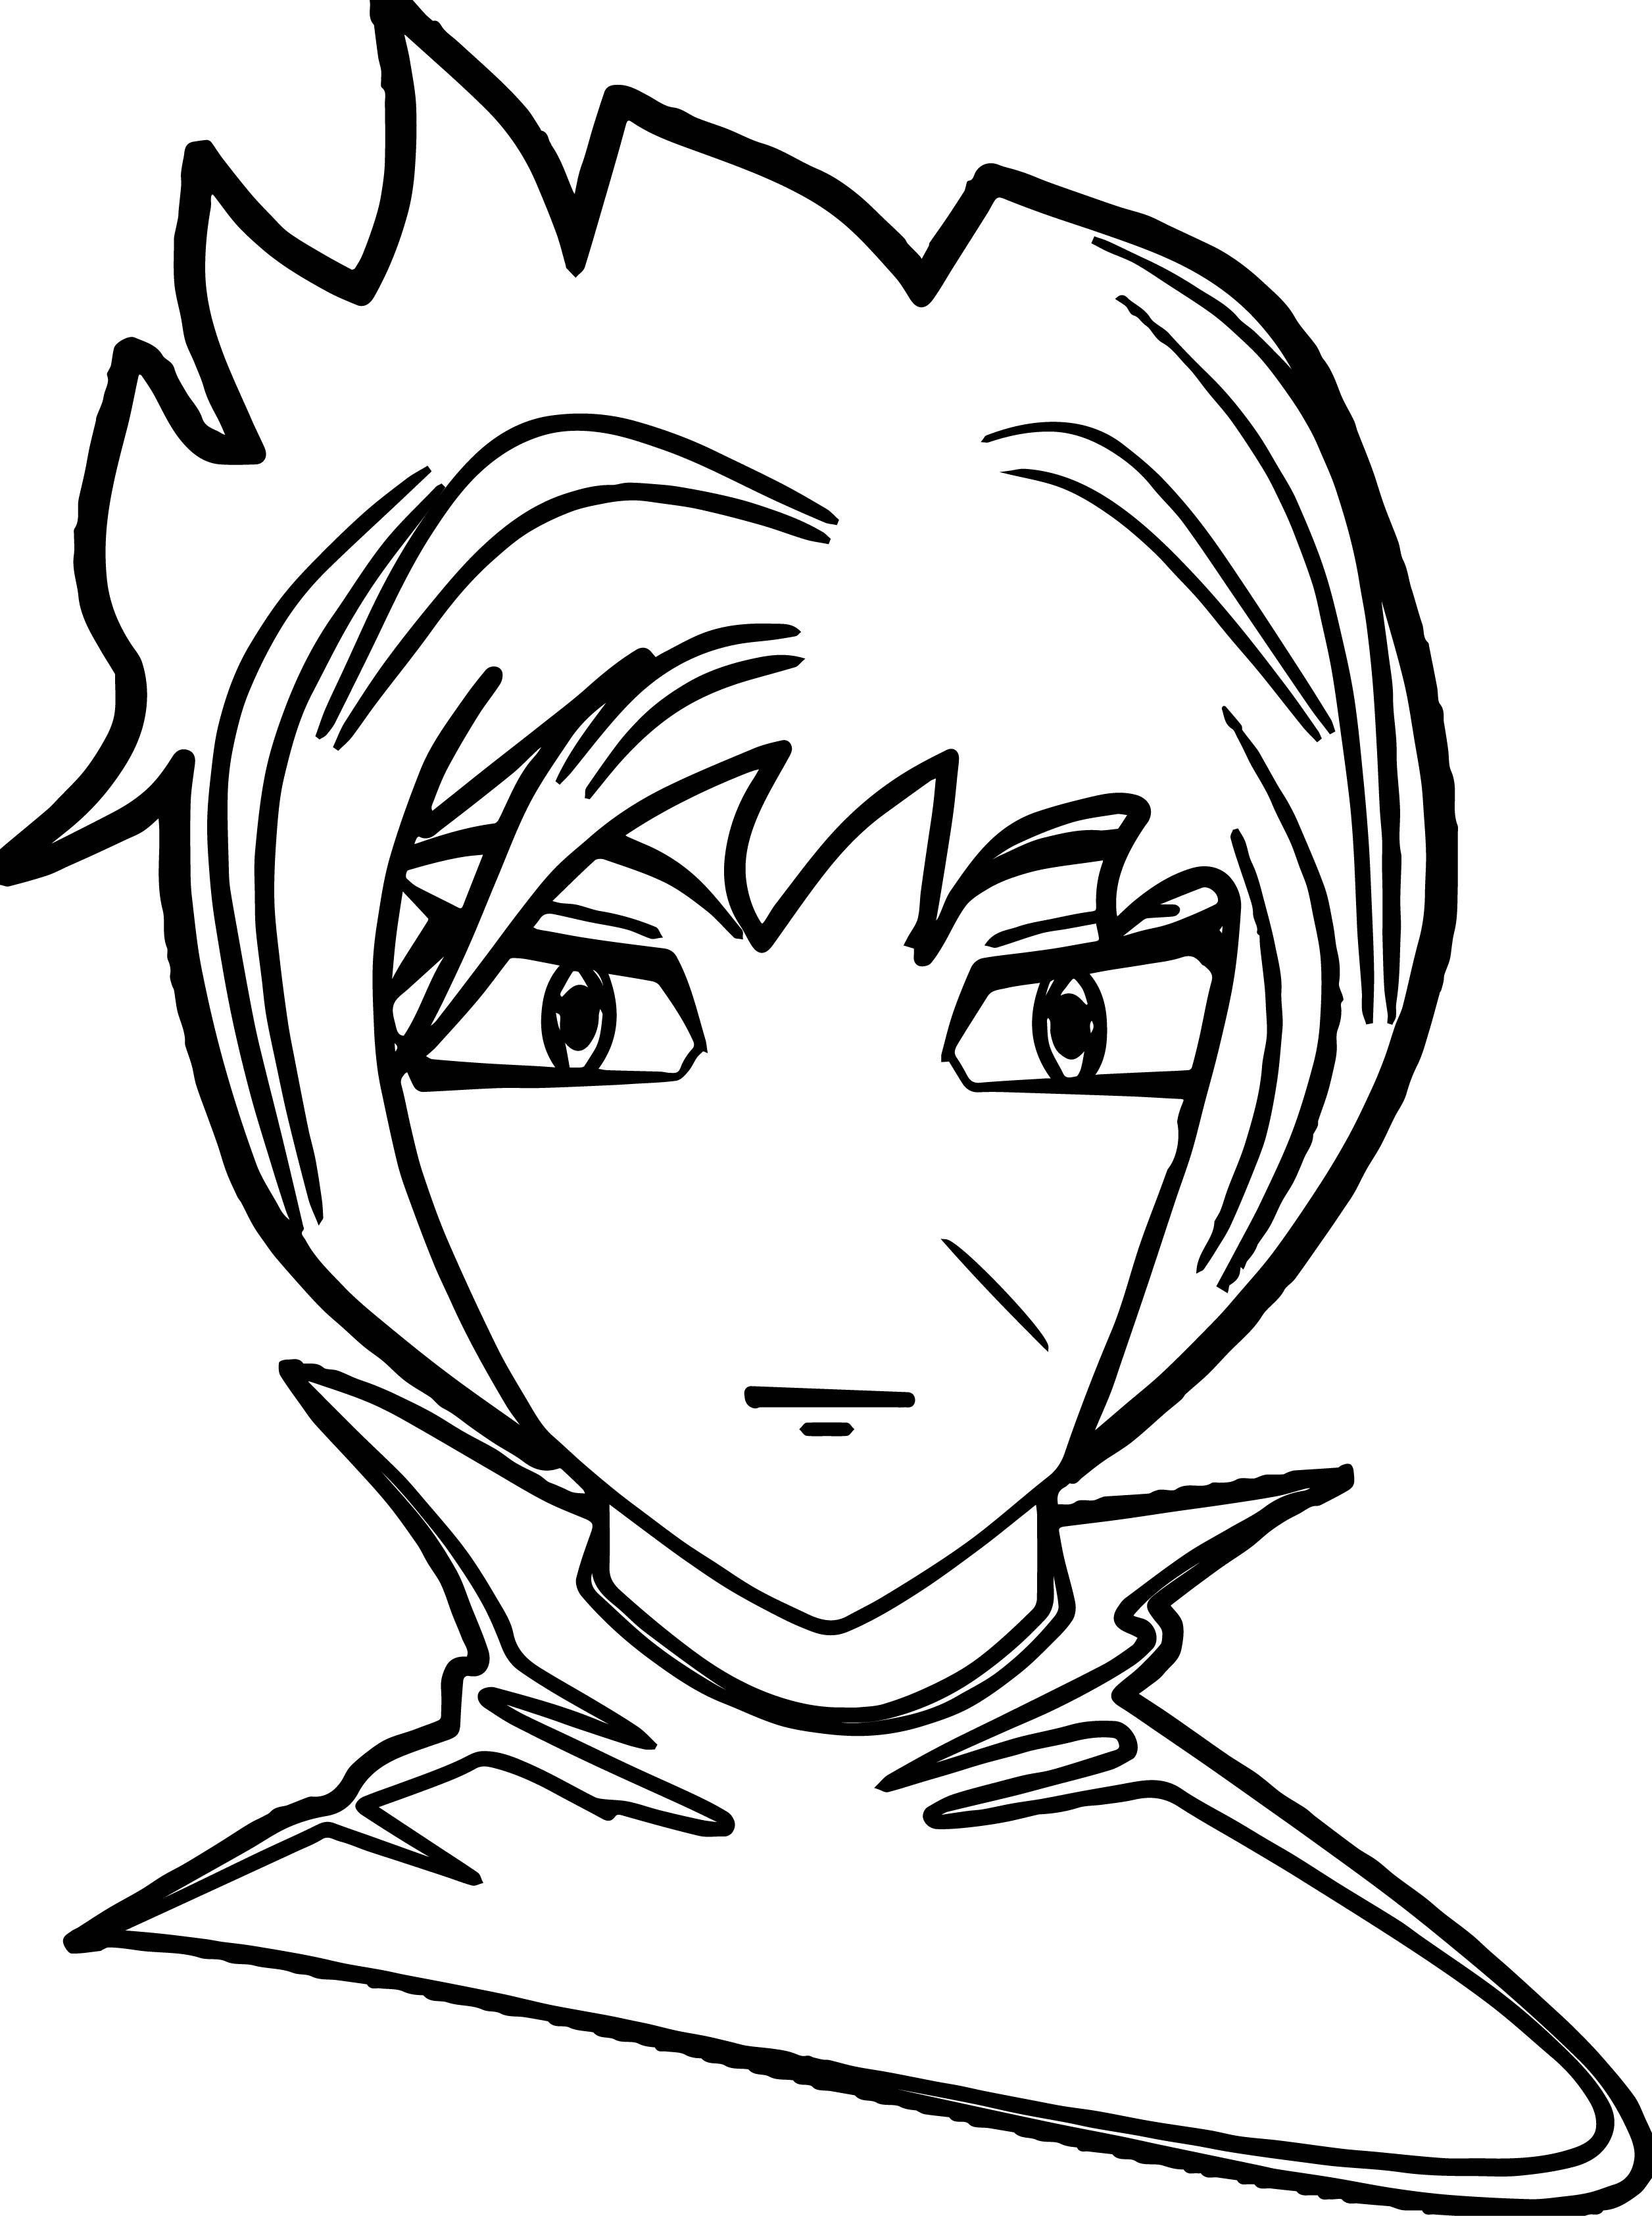 Anime man face coloring page for Man coloring page